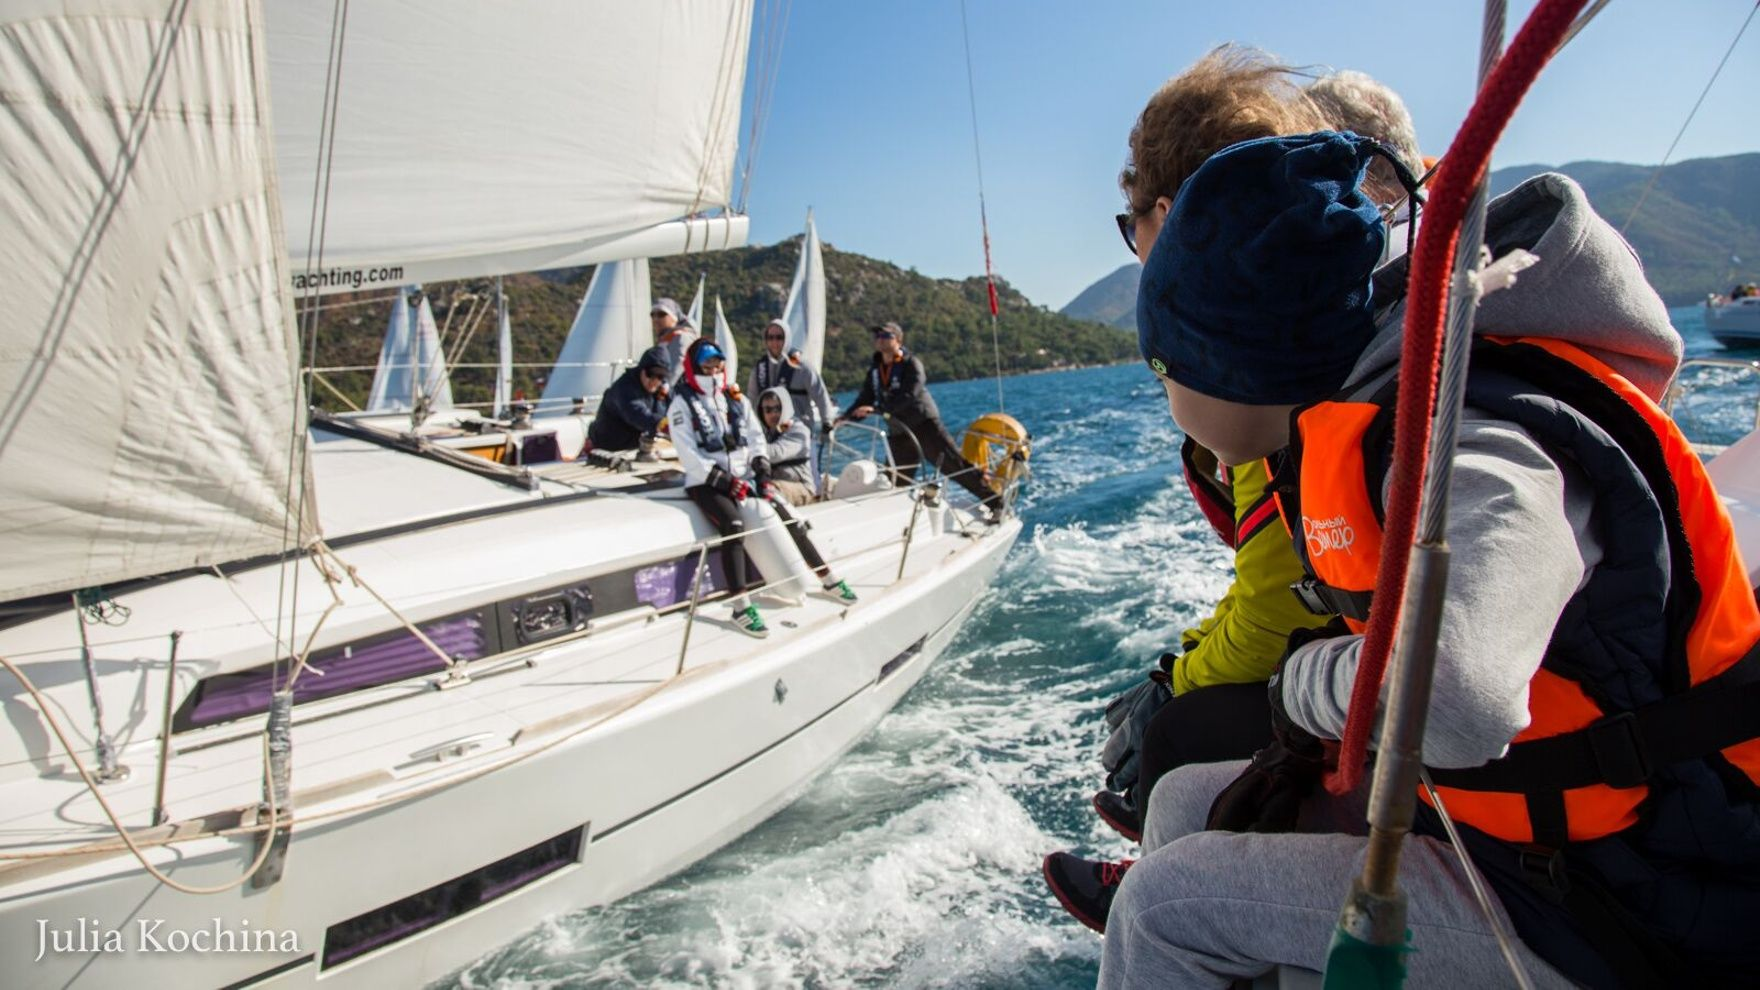 Регата MIRW — Marmaris International Race Week 2020